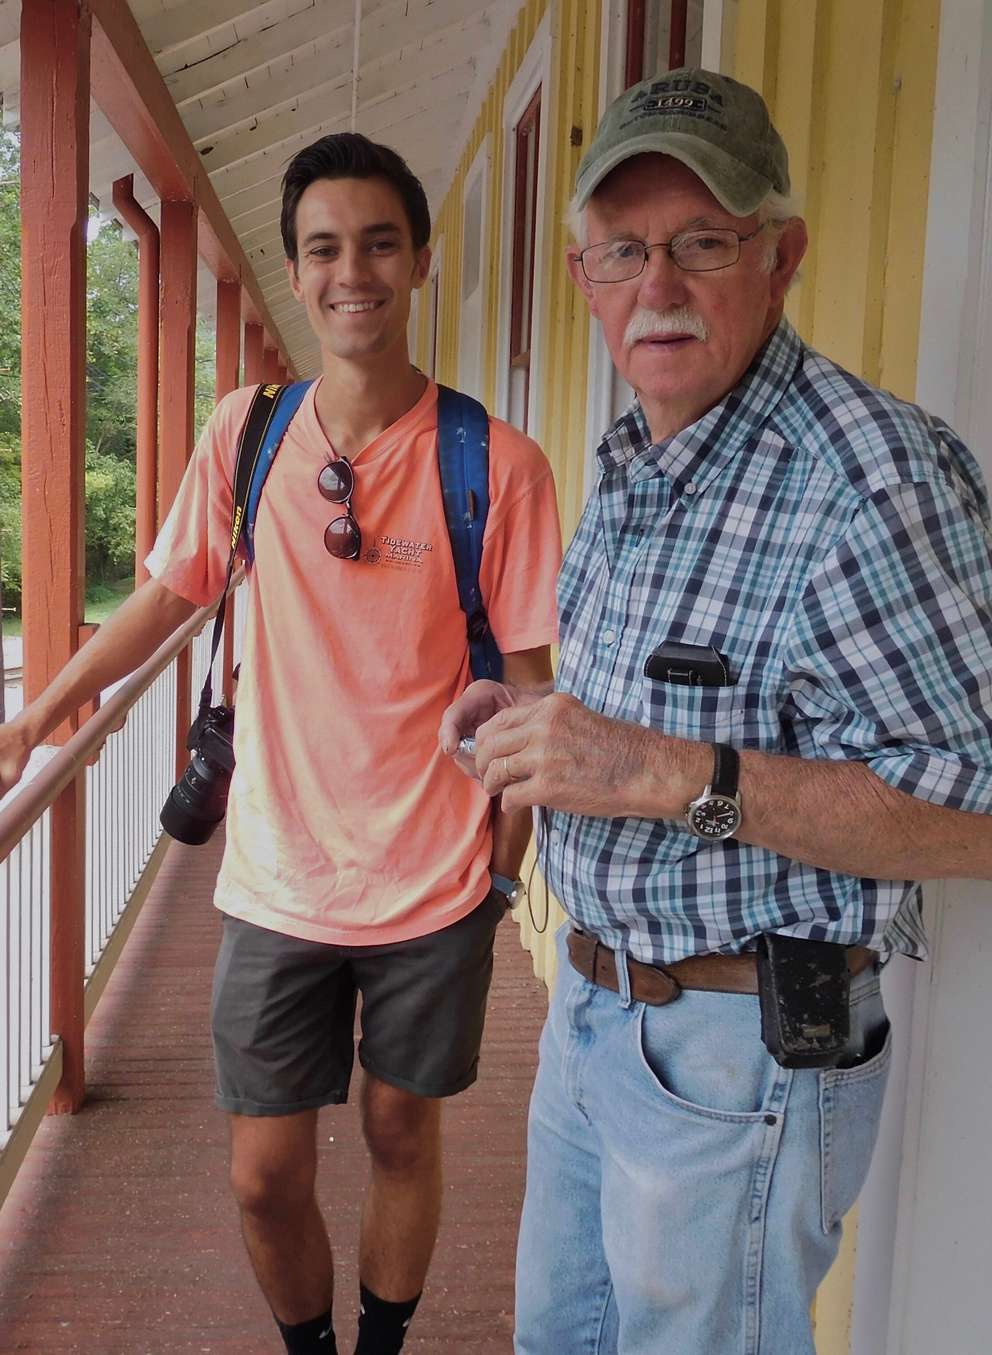 Samuel Thomas, 24, is pictured with his grandfather. Provided by Samuel Thomas